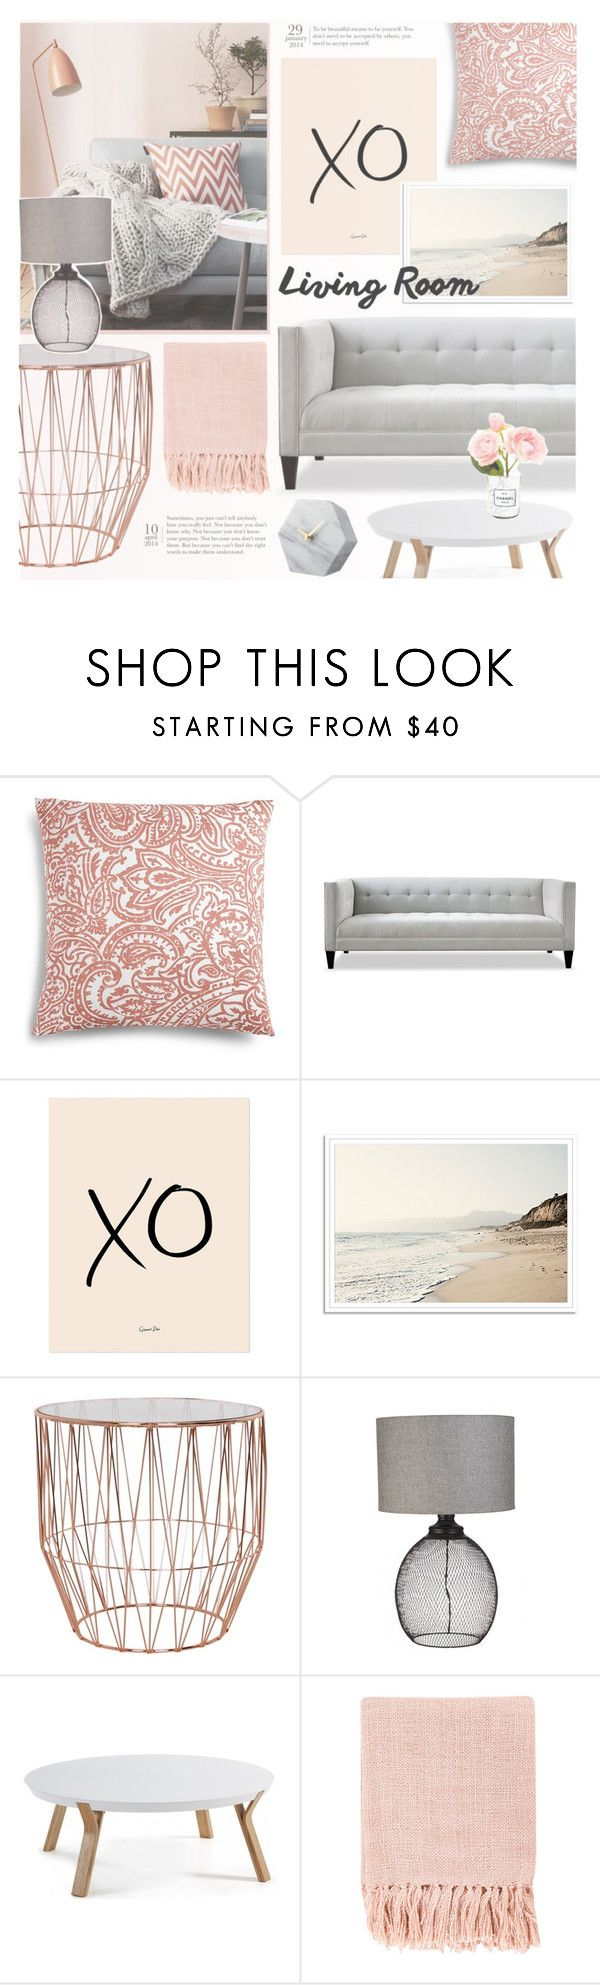 """""""Pink And Grey"""" by makeupgoddess ❤ liked on Polyvore featuring interior, interiors, interior design, home, home decor, interior decorating, Charter Club, xO Design, Surya and Chanel"""